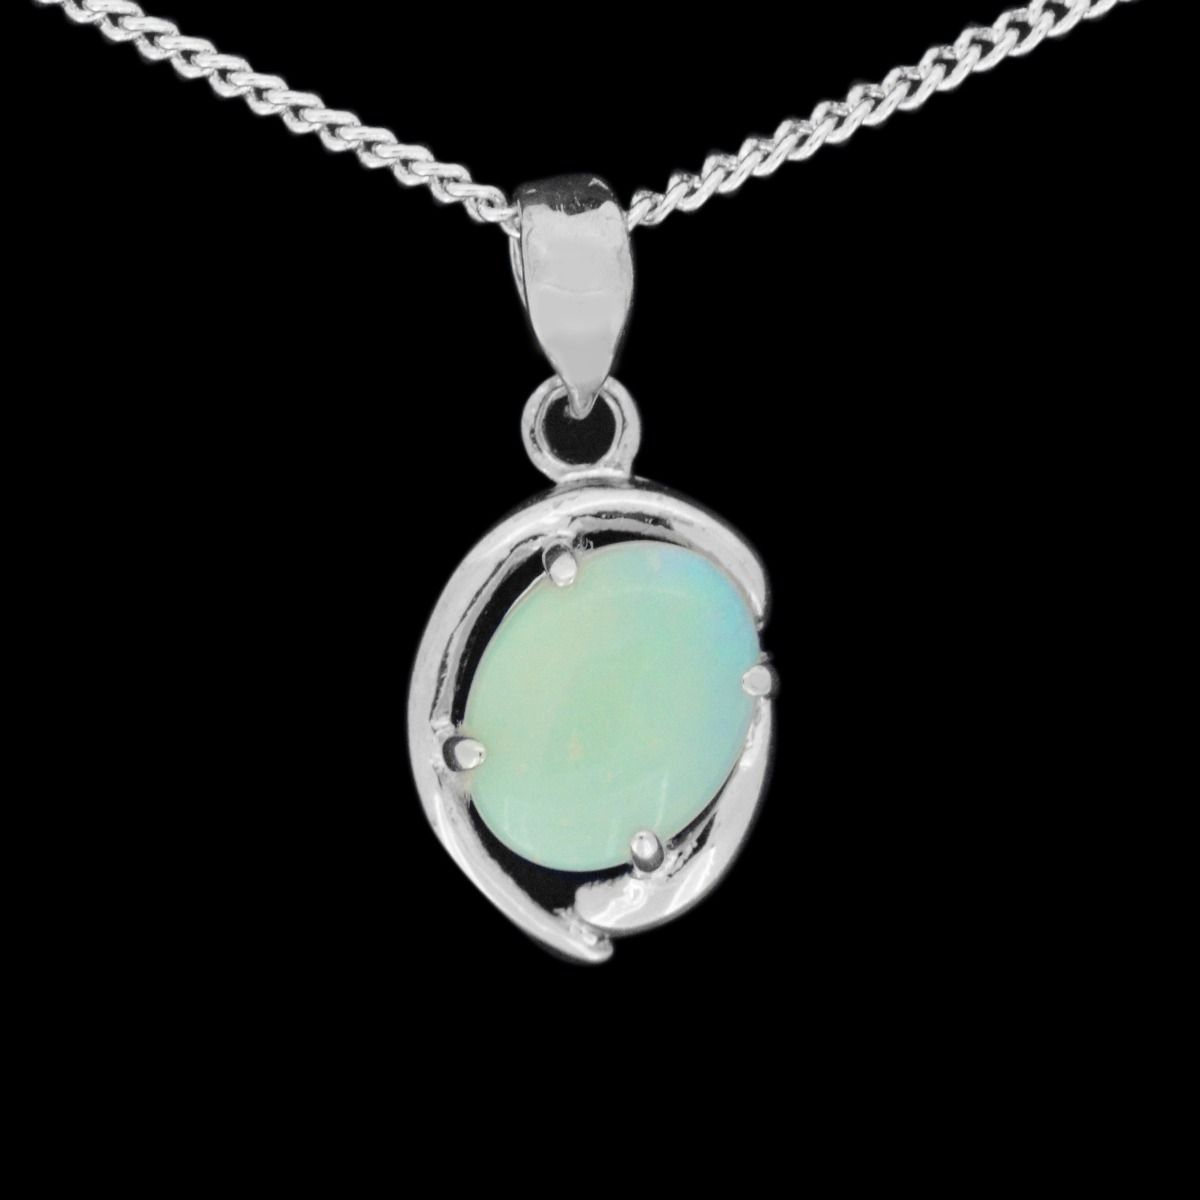 Sterling silver solid opal pendant 9mmx7mm